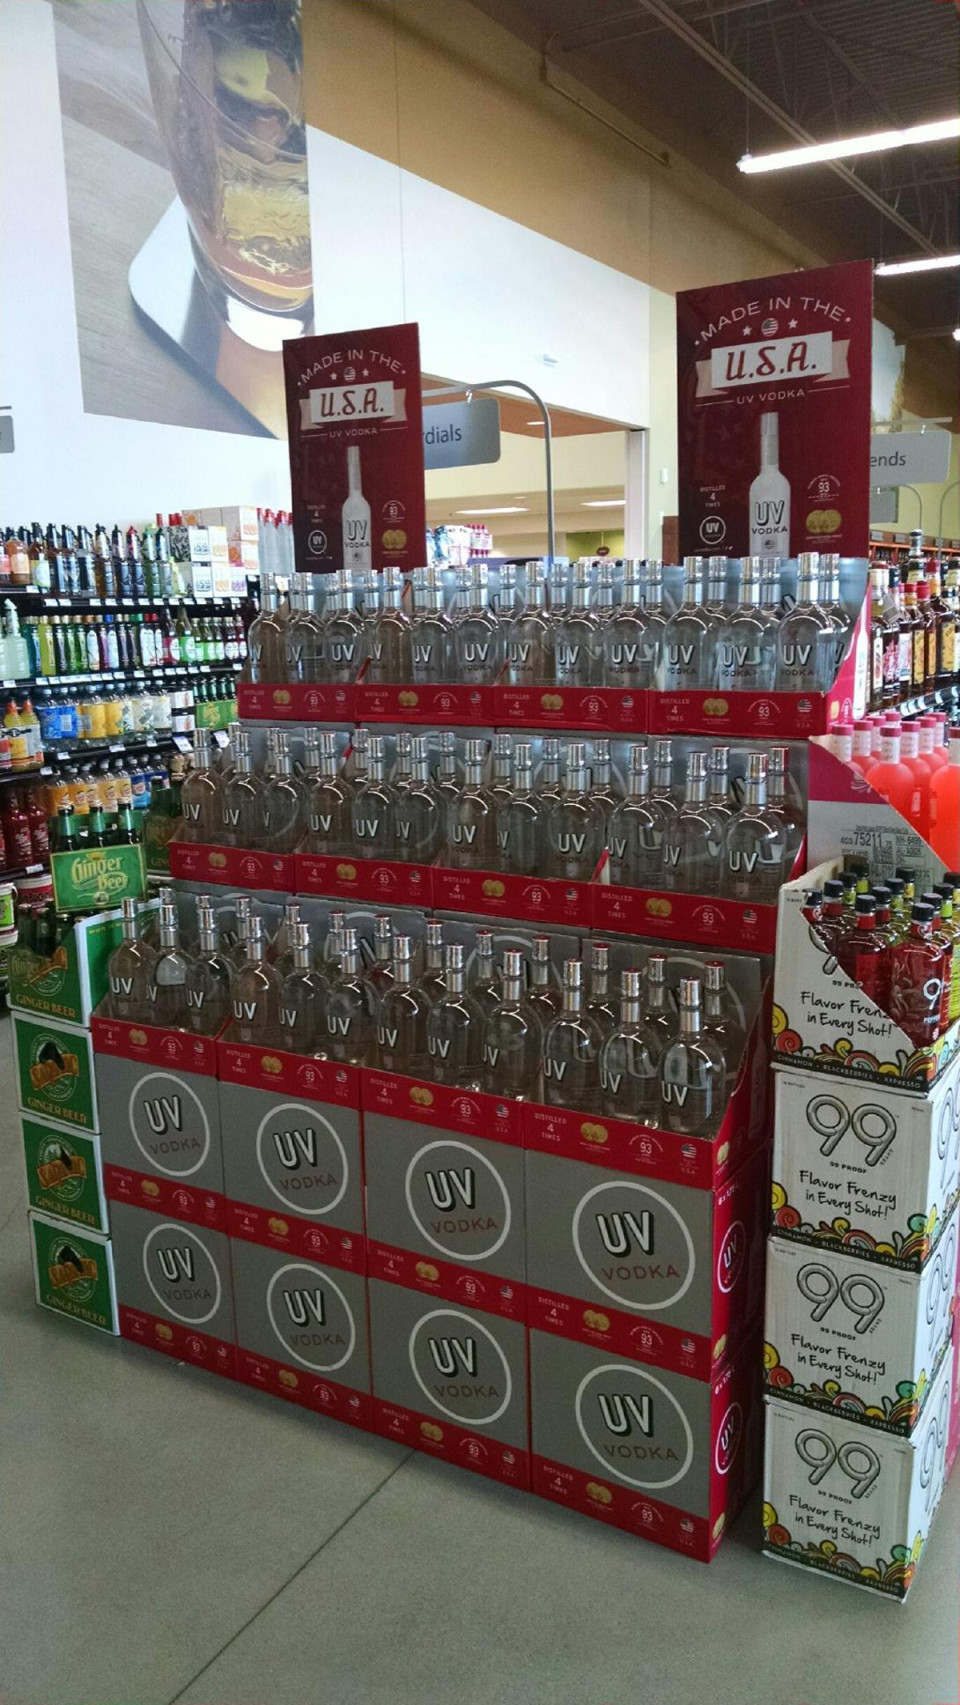 "UV vodka proudly touts that it's ""Made in the USA"" on in-store displays. The brand's strongest sales occur in the off-premise."